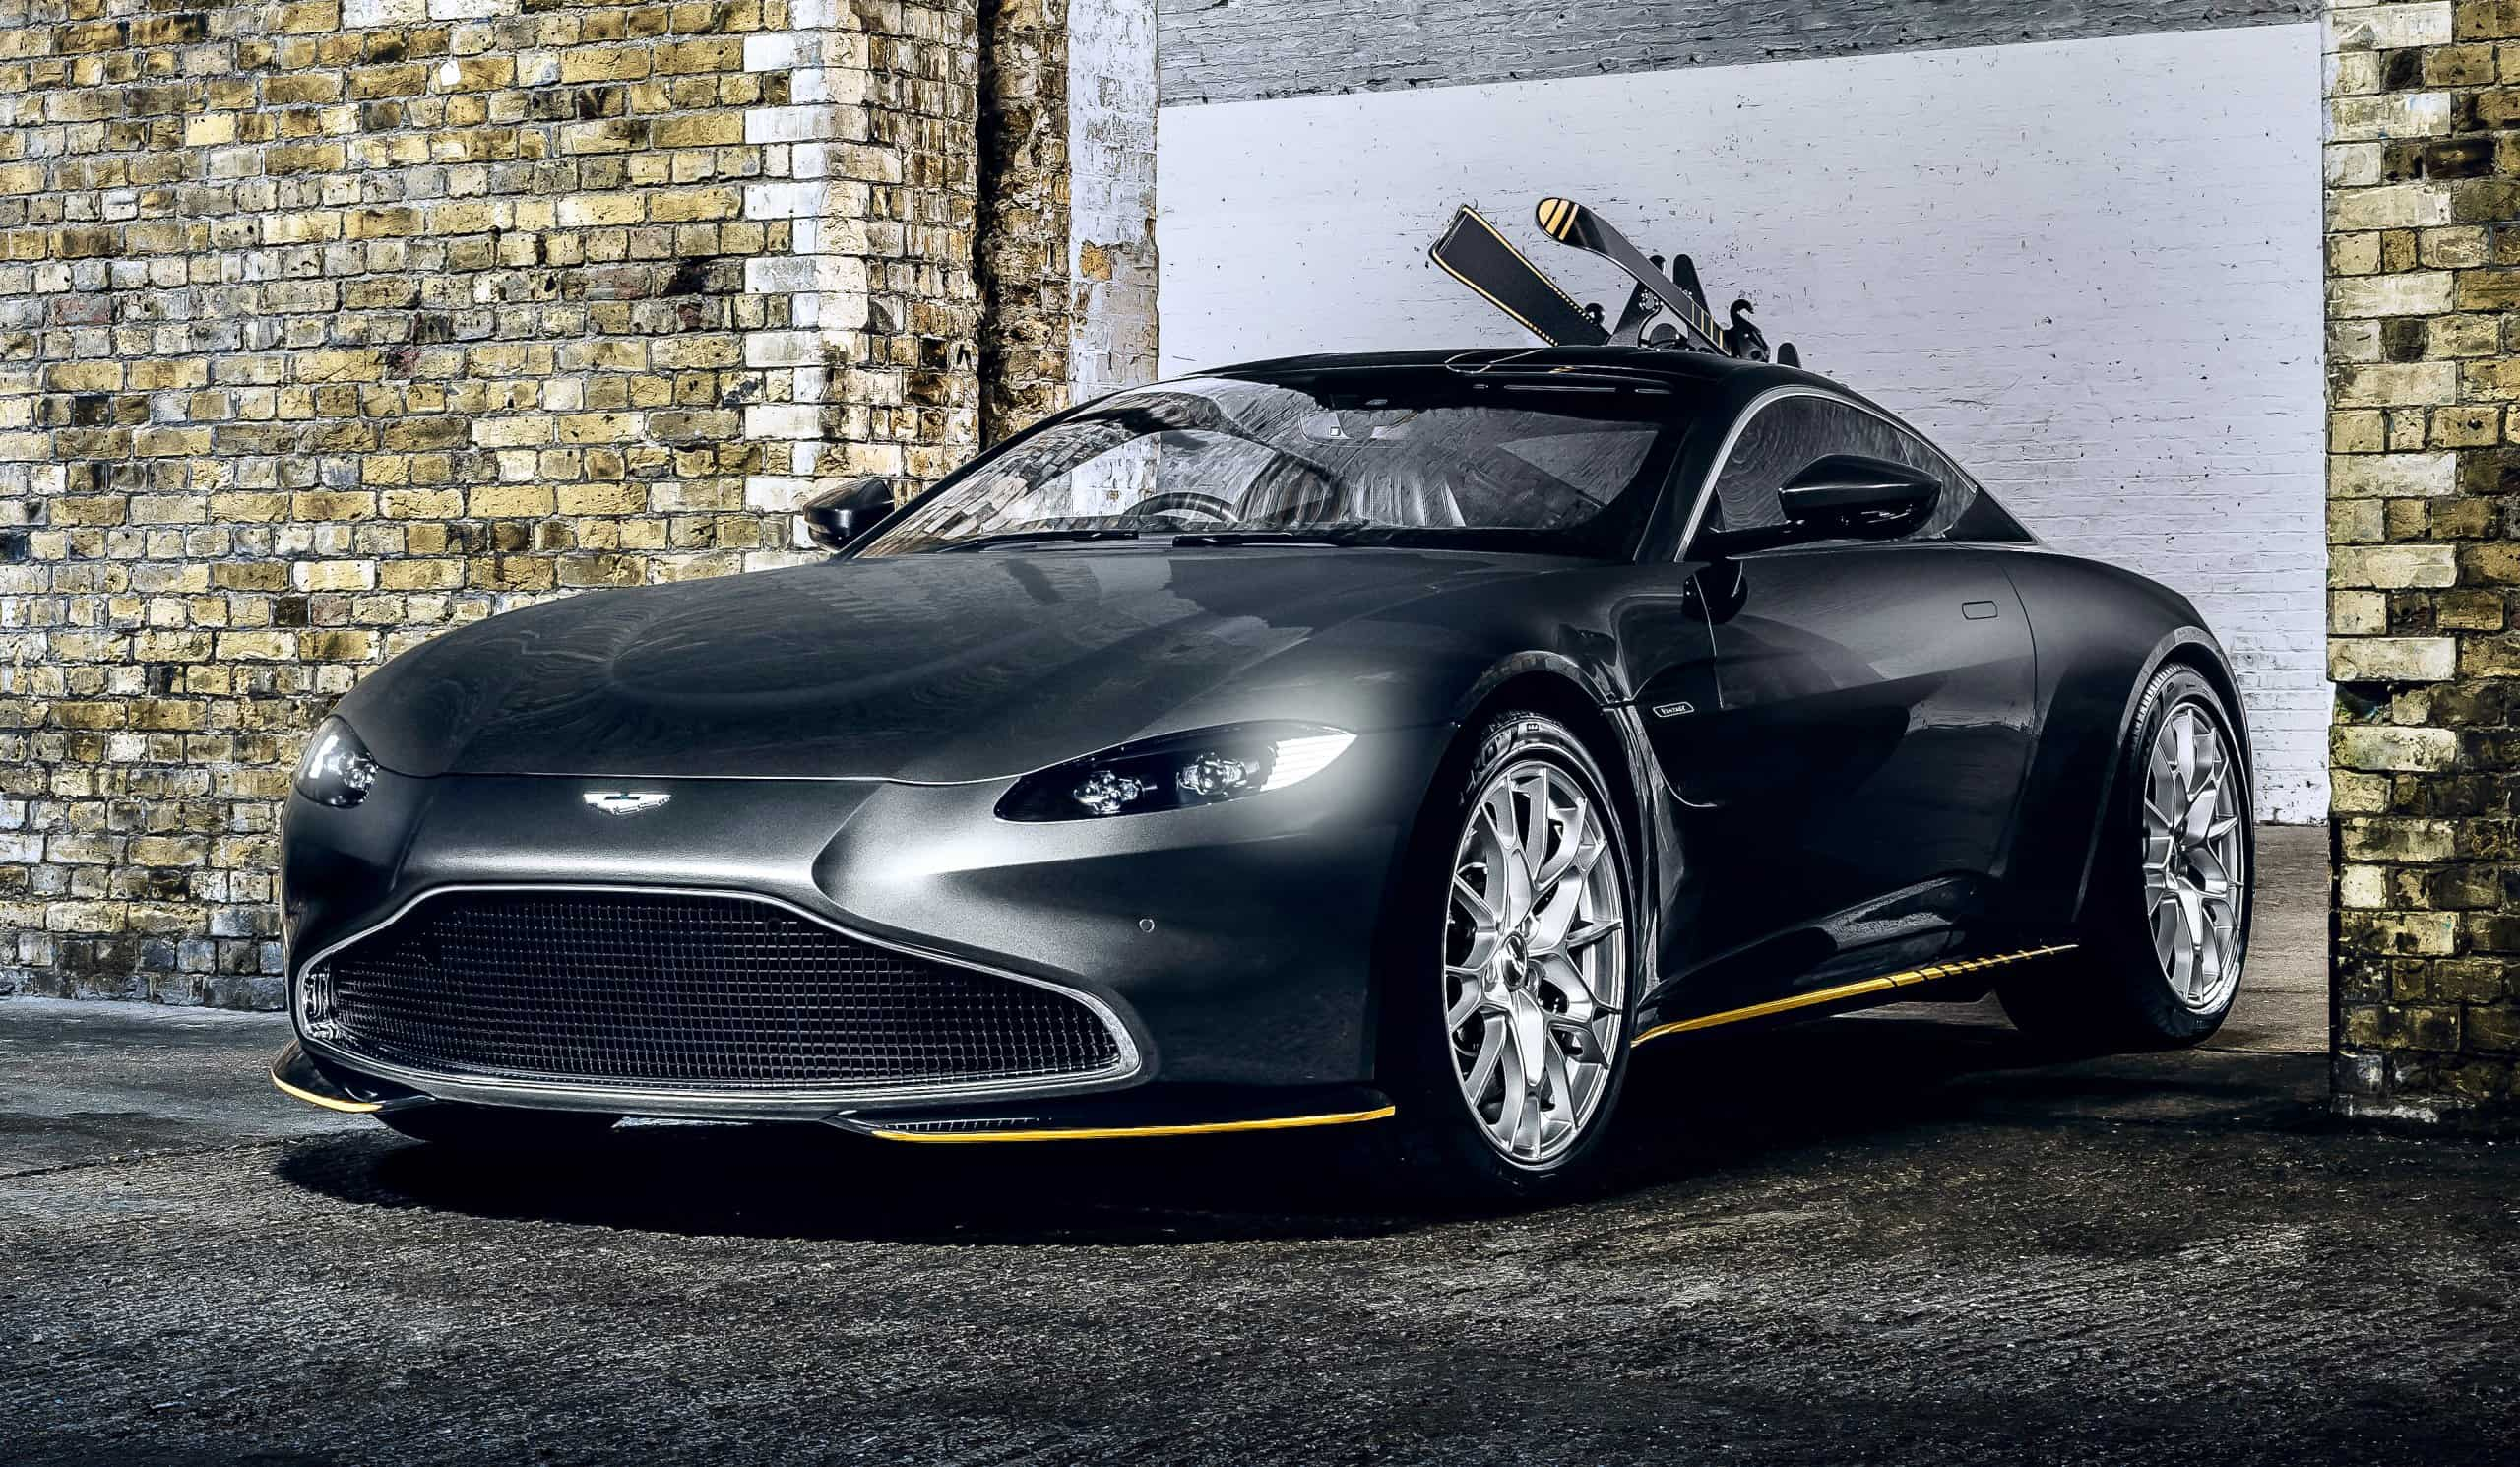 Aston Martin Plans 007 Movie Inspired Limited Edition Models